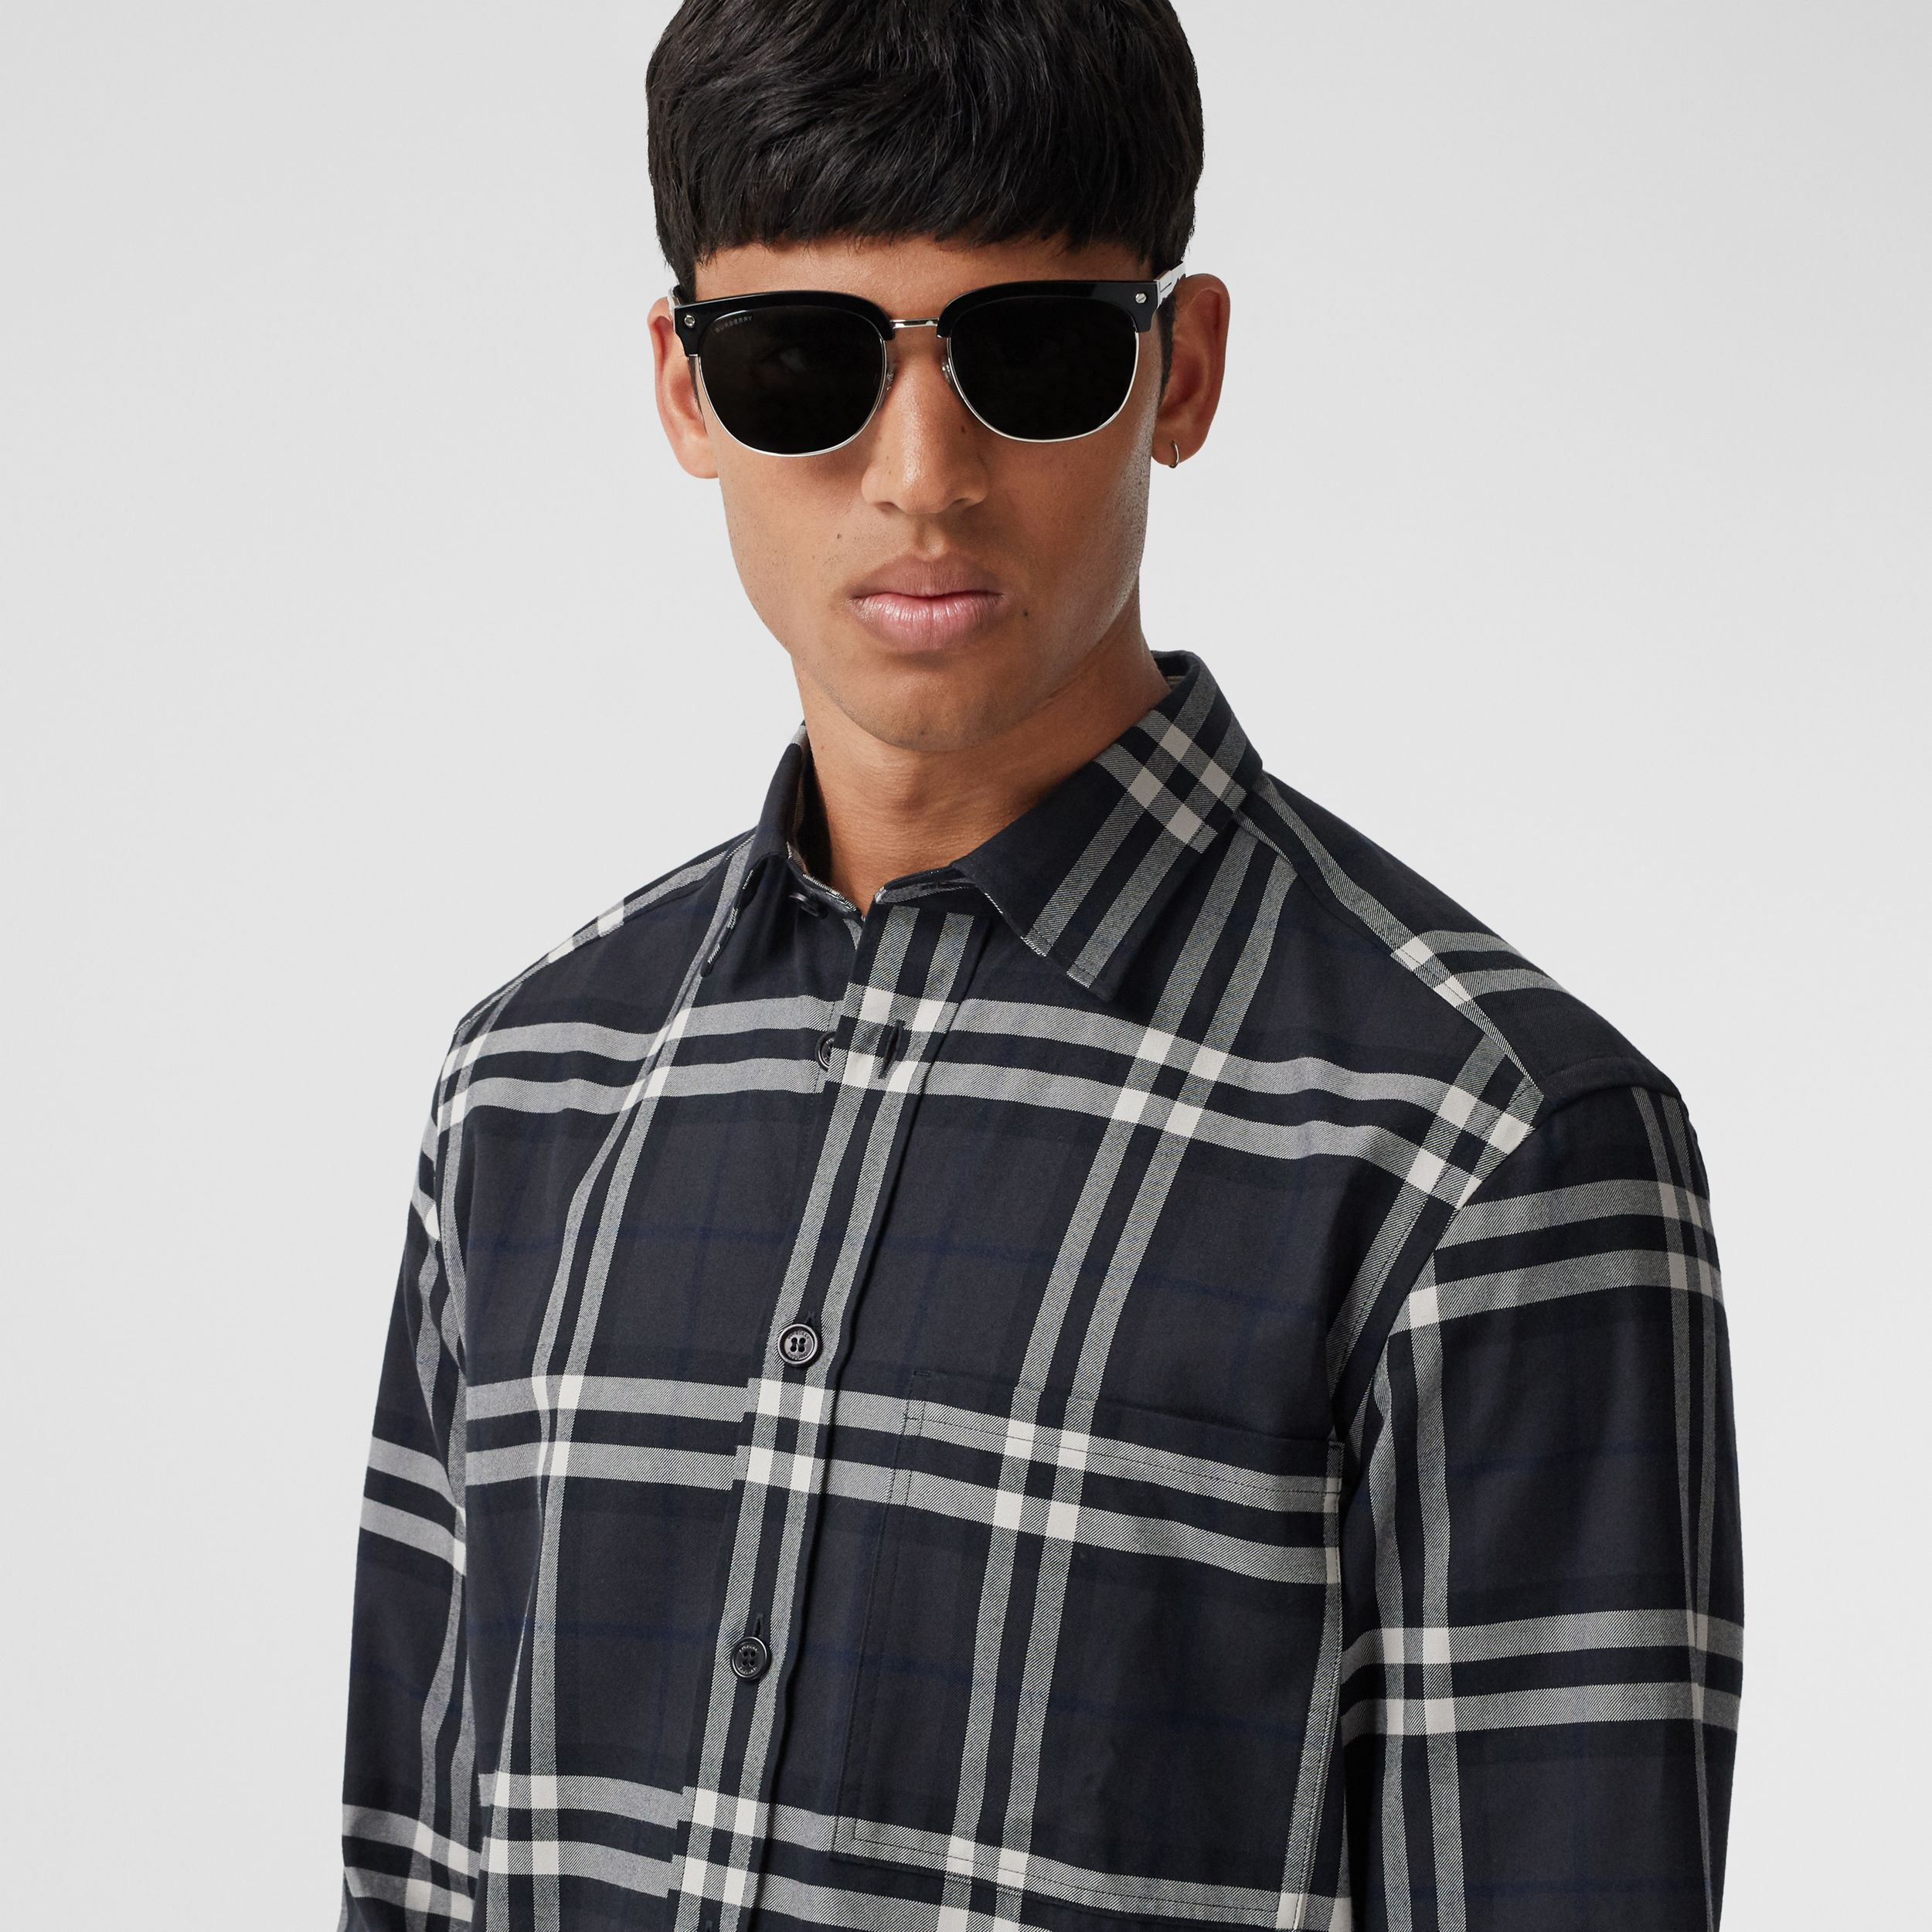 Vintage Check Cotton Flannel Shirt in Charcoal - Men | Burberry - 2